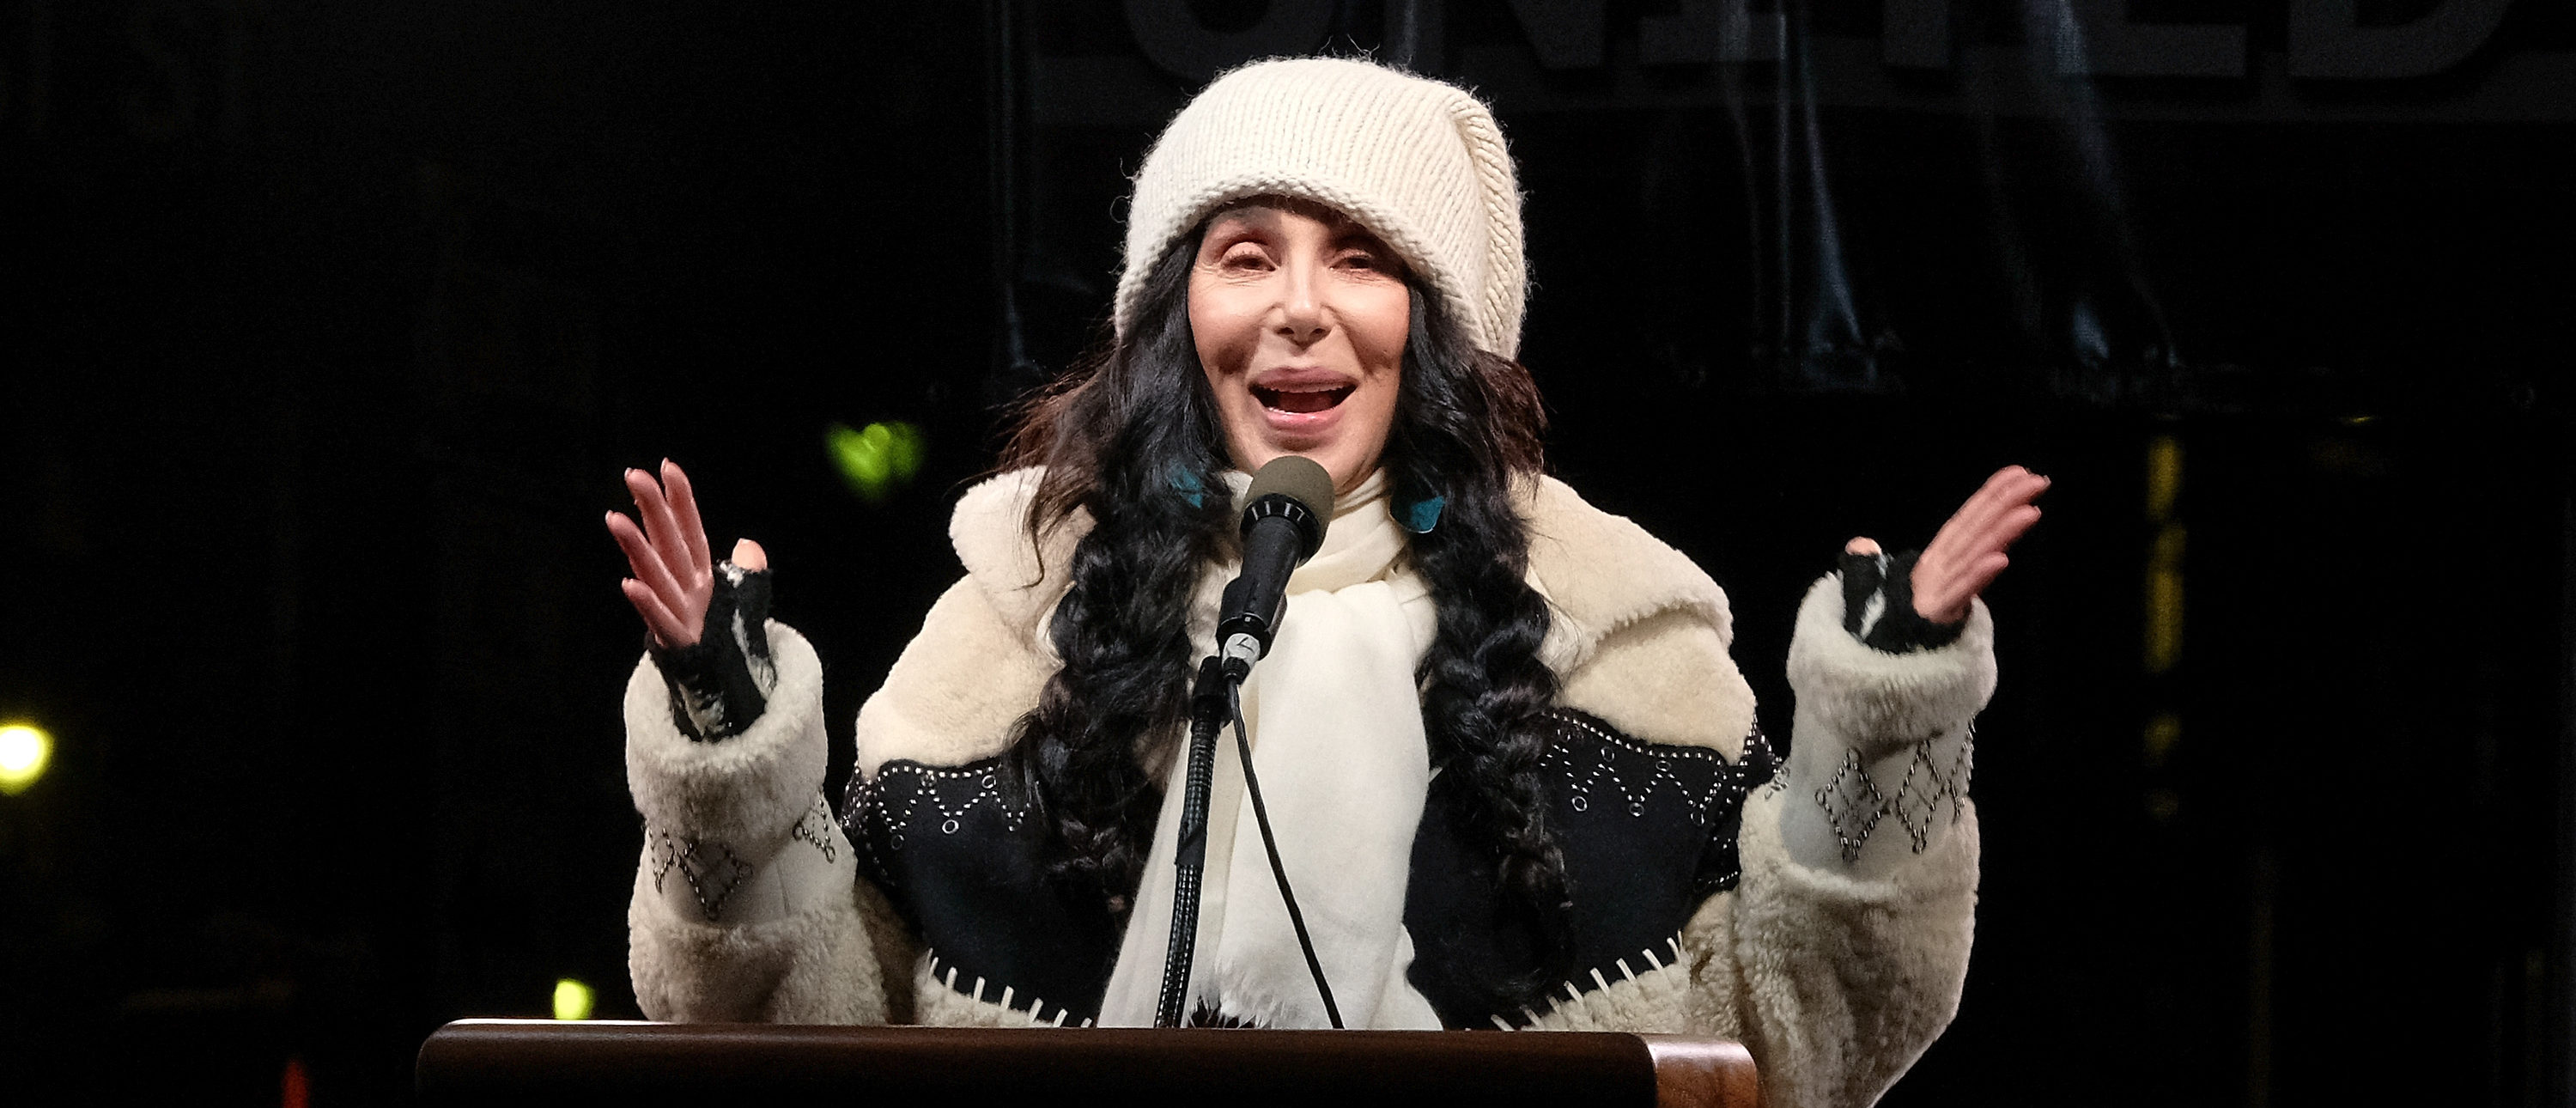 NEW YORK, NY - JANUARY 19: Cher speaks onstage during the We Stand United NYC Rally outside Trump International Hotel & Tower on January 19, 2017 in New York City. (Photo by D Dipasupil/Getty Images)